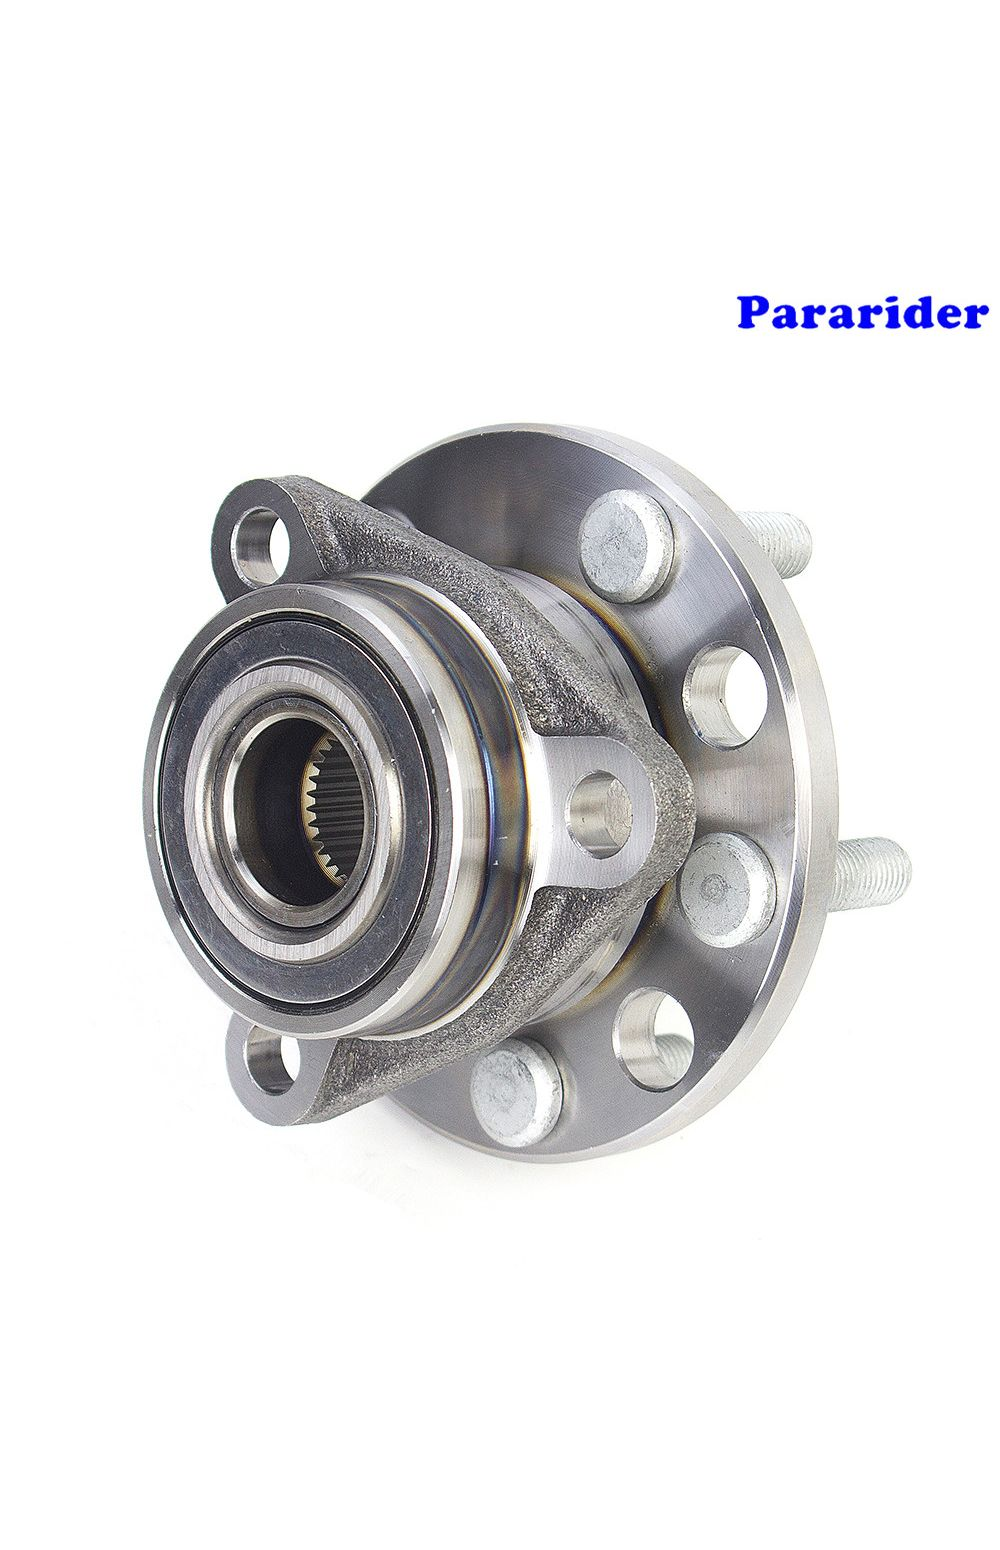 2002 For Pontiac Sunfire Front Wheel Bearing and Hub Assembly x 2 Note: Standard